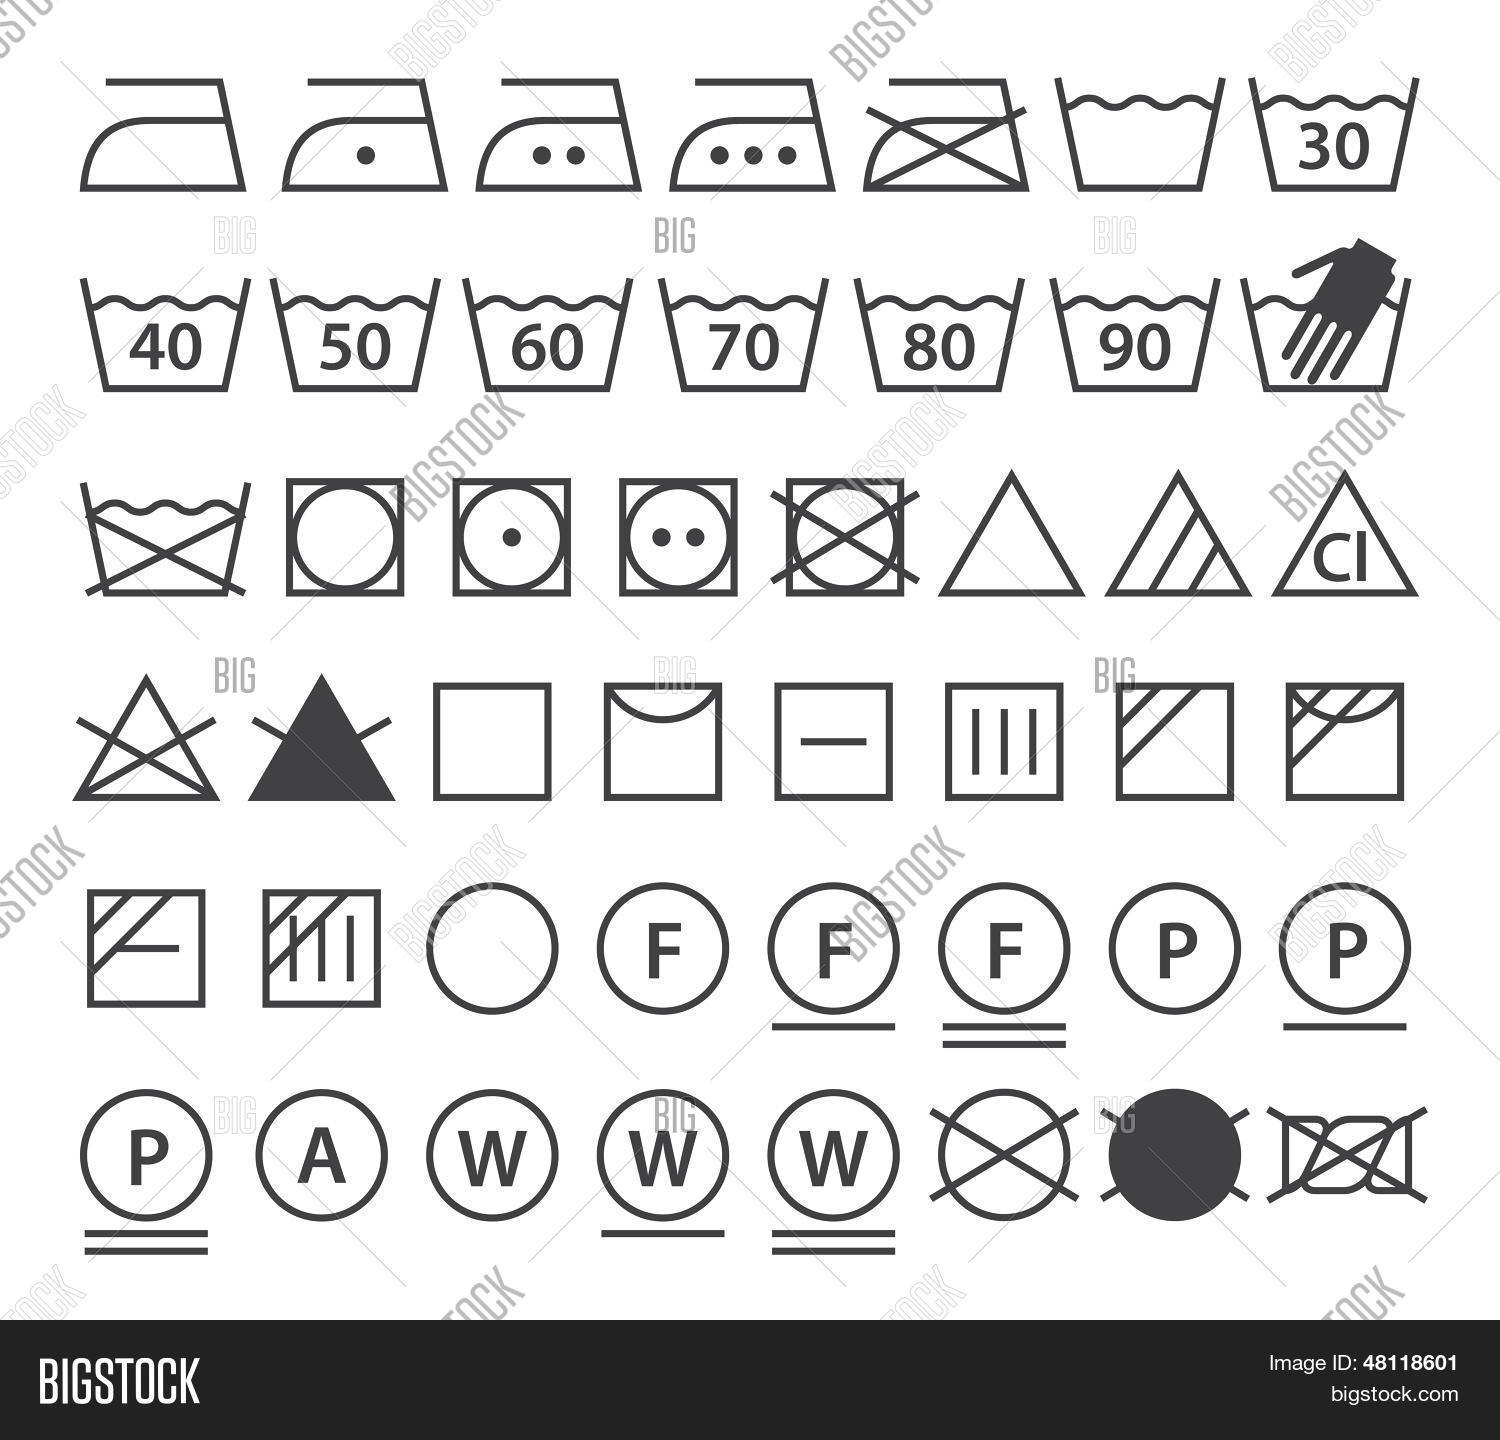 Set Washing Symbols Vector Amp Photo Free Trial